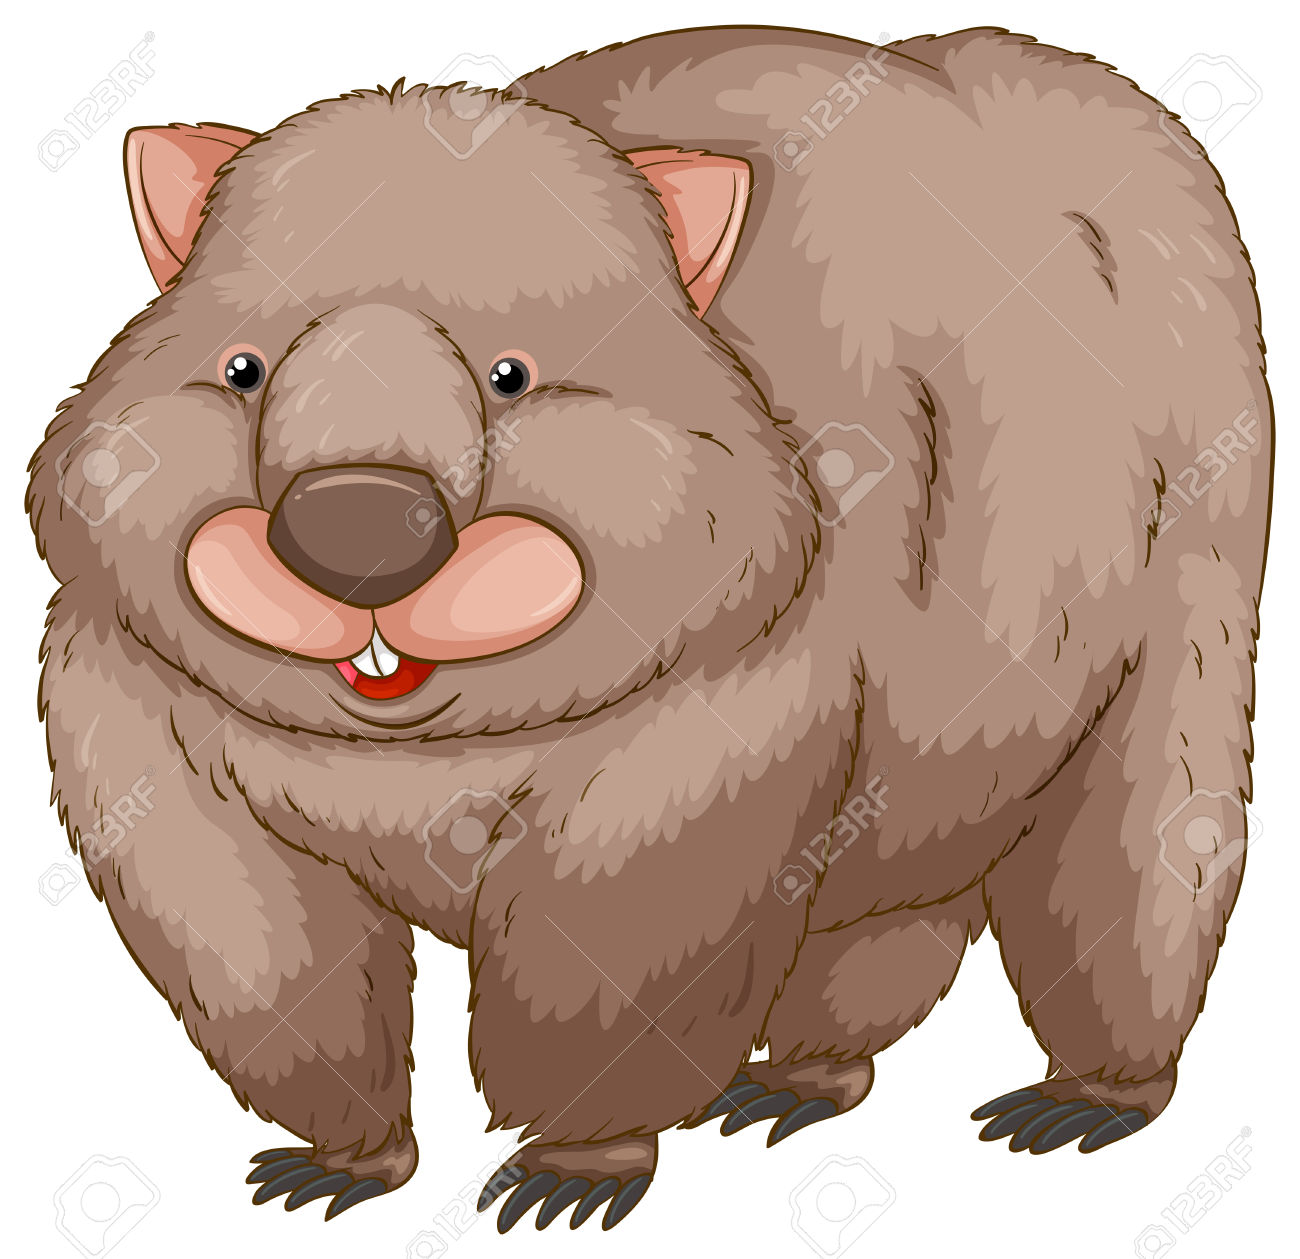 Wombat clipart #11, Download drawings